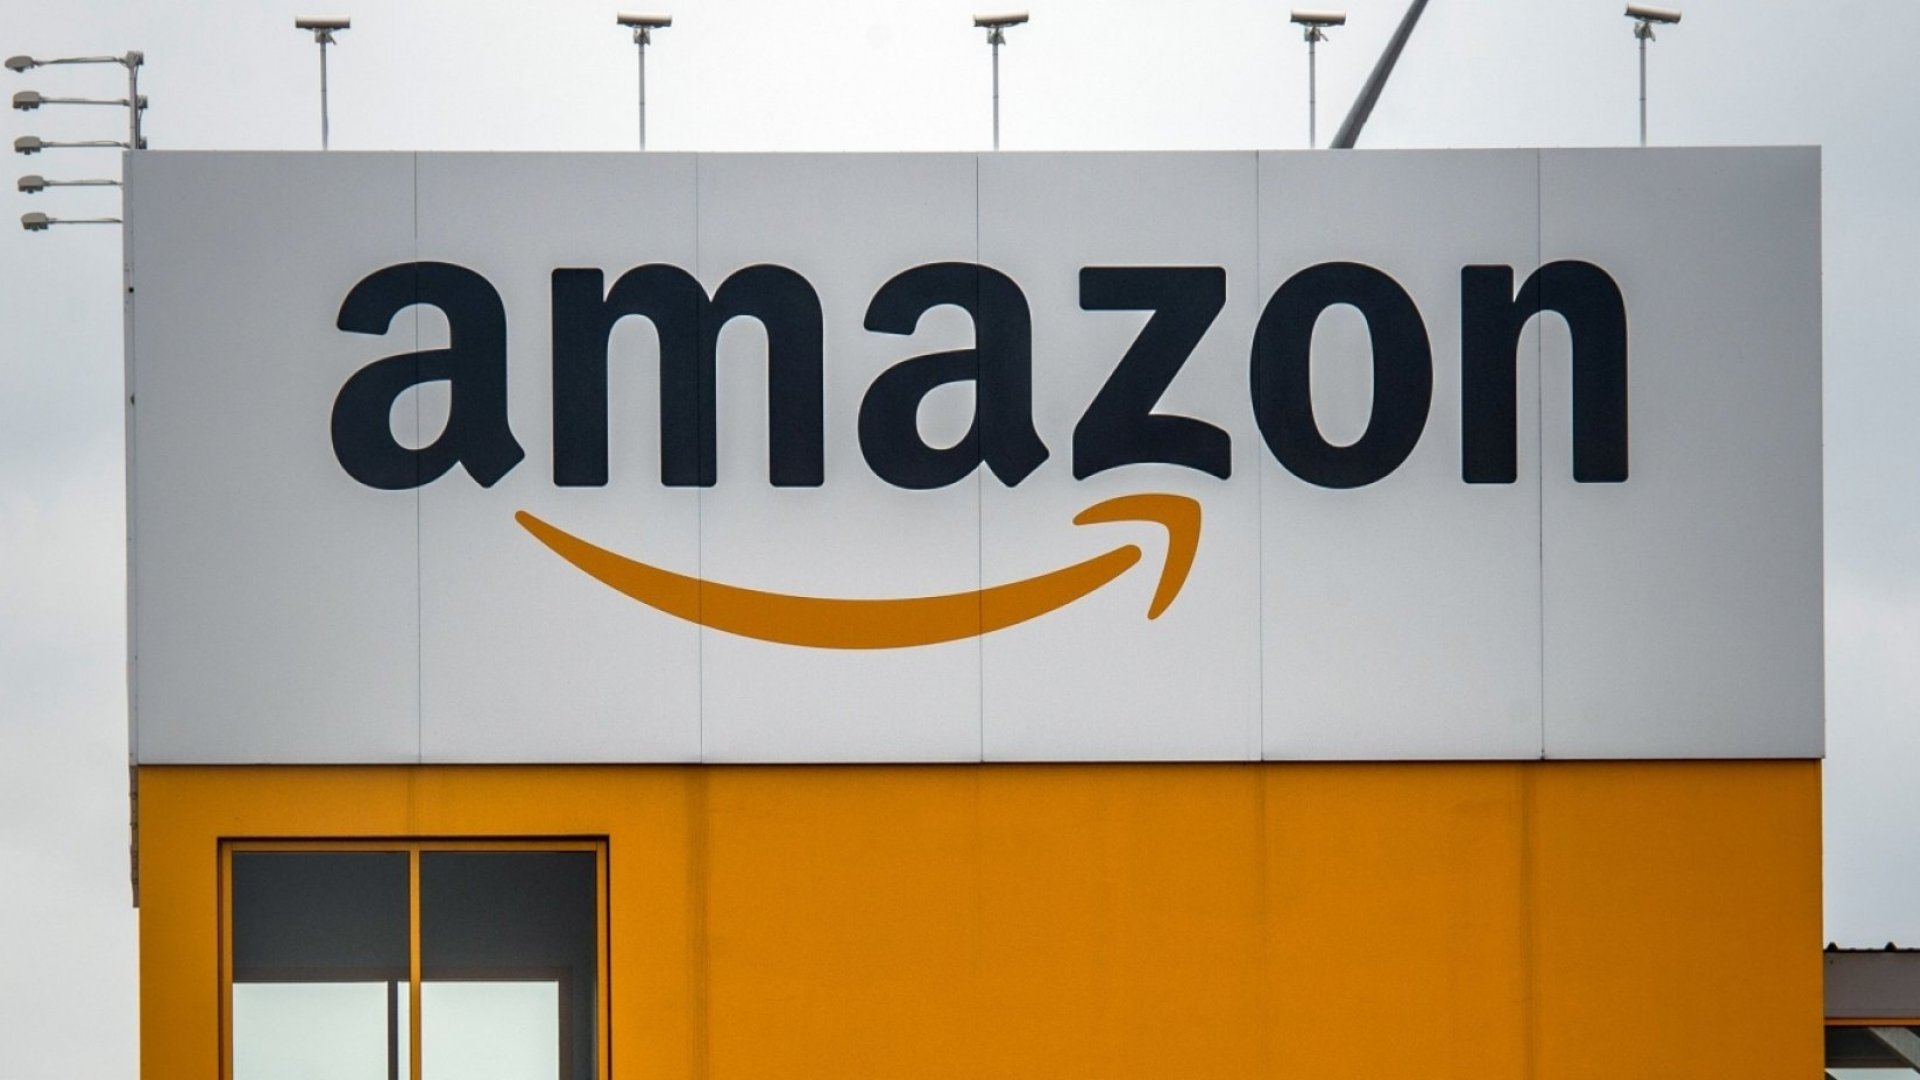 Amazon Is Paying Its Employees $12,000 to Train for a Job at Another Company. And It's Brilliant